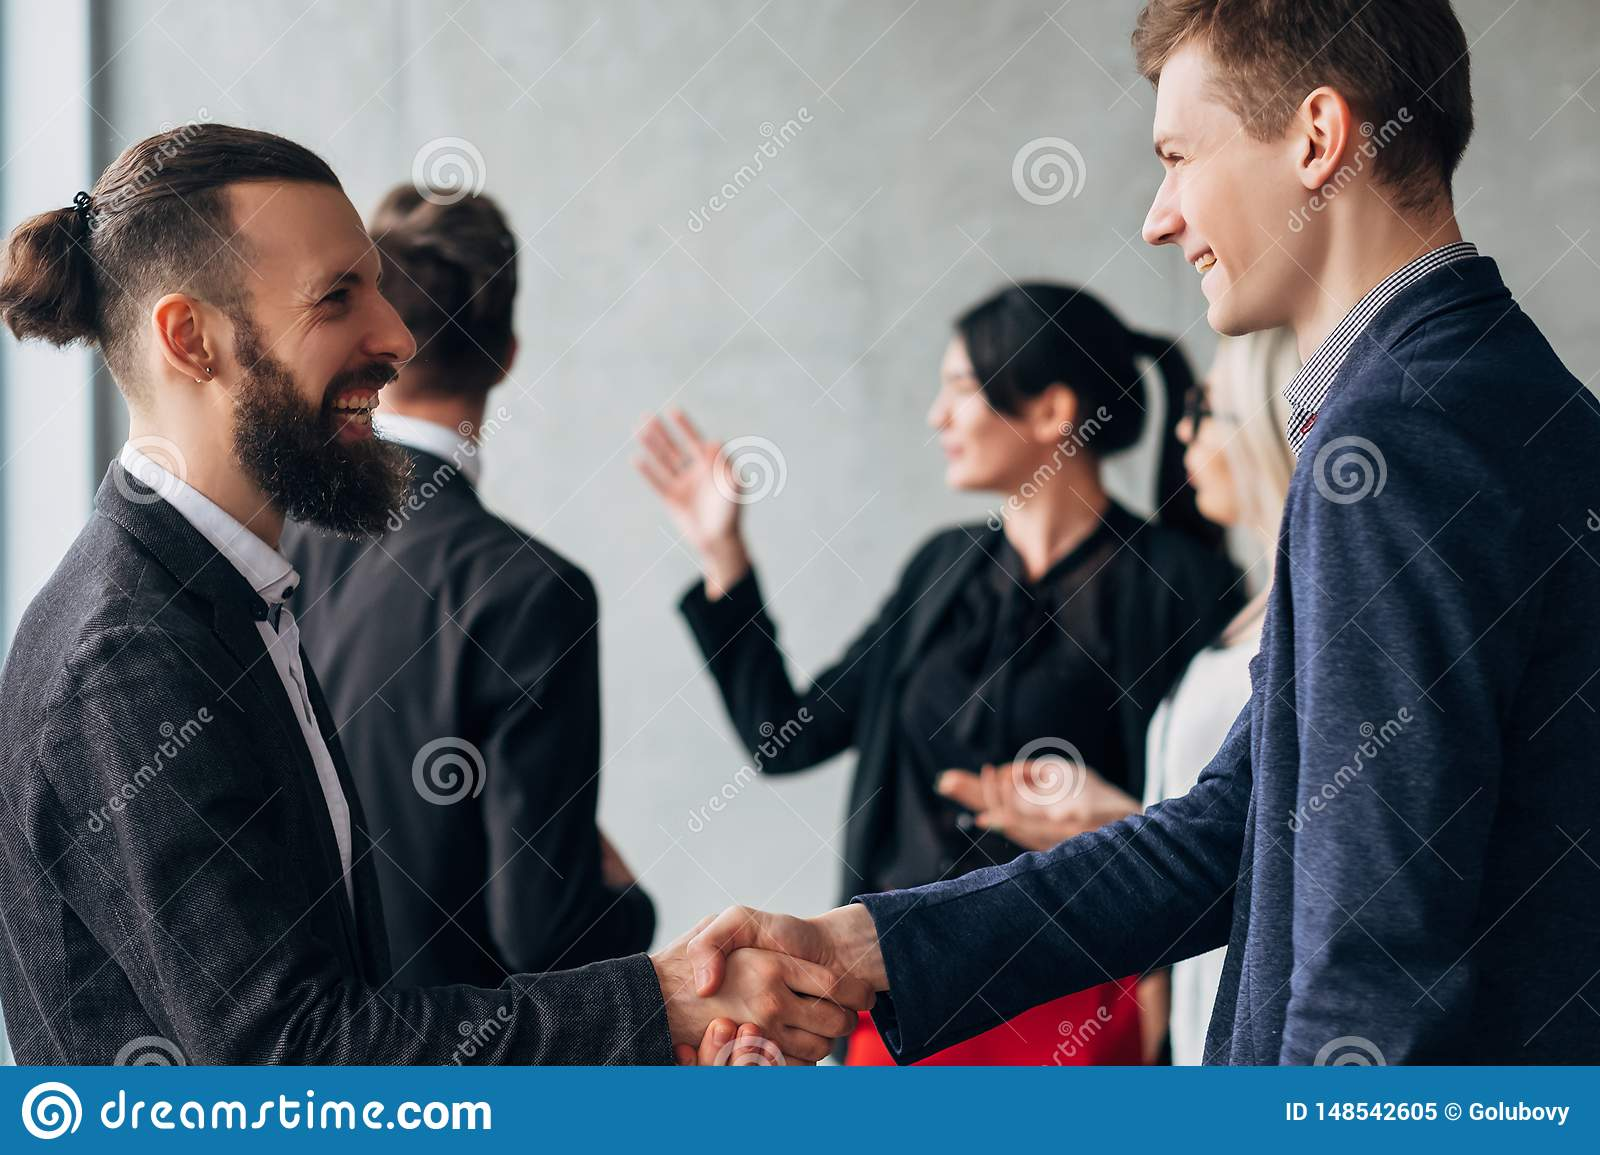 Corporate culture business etiquette handshake